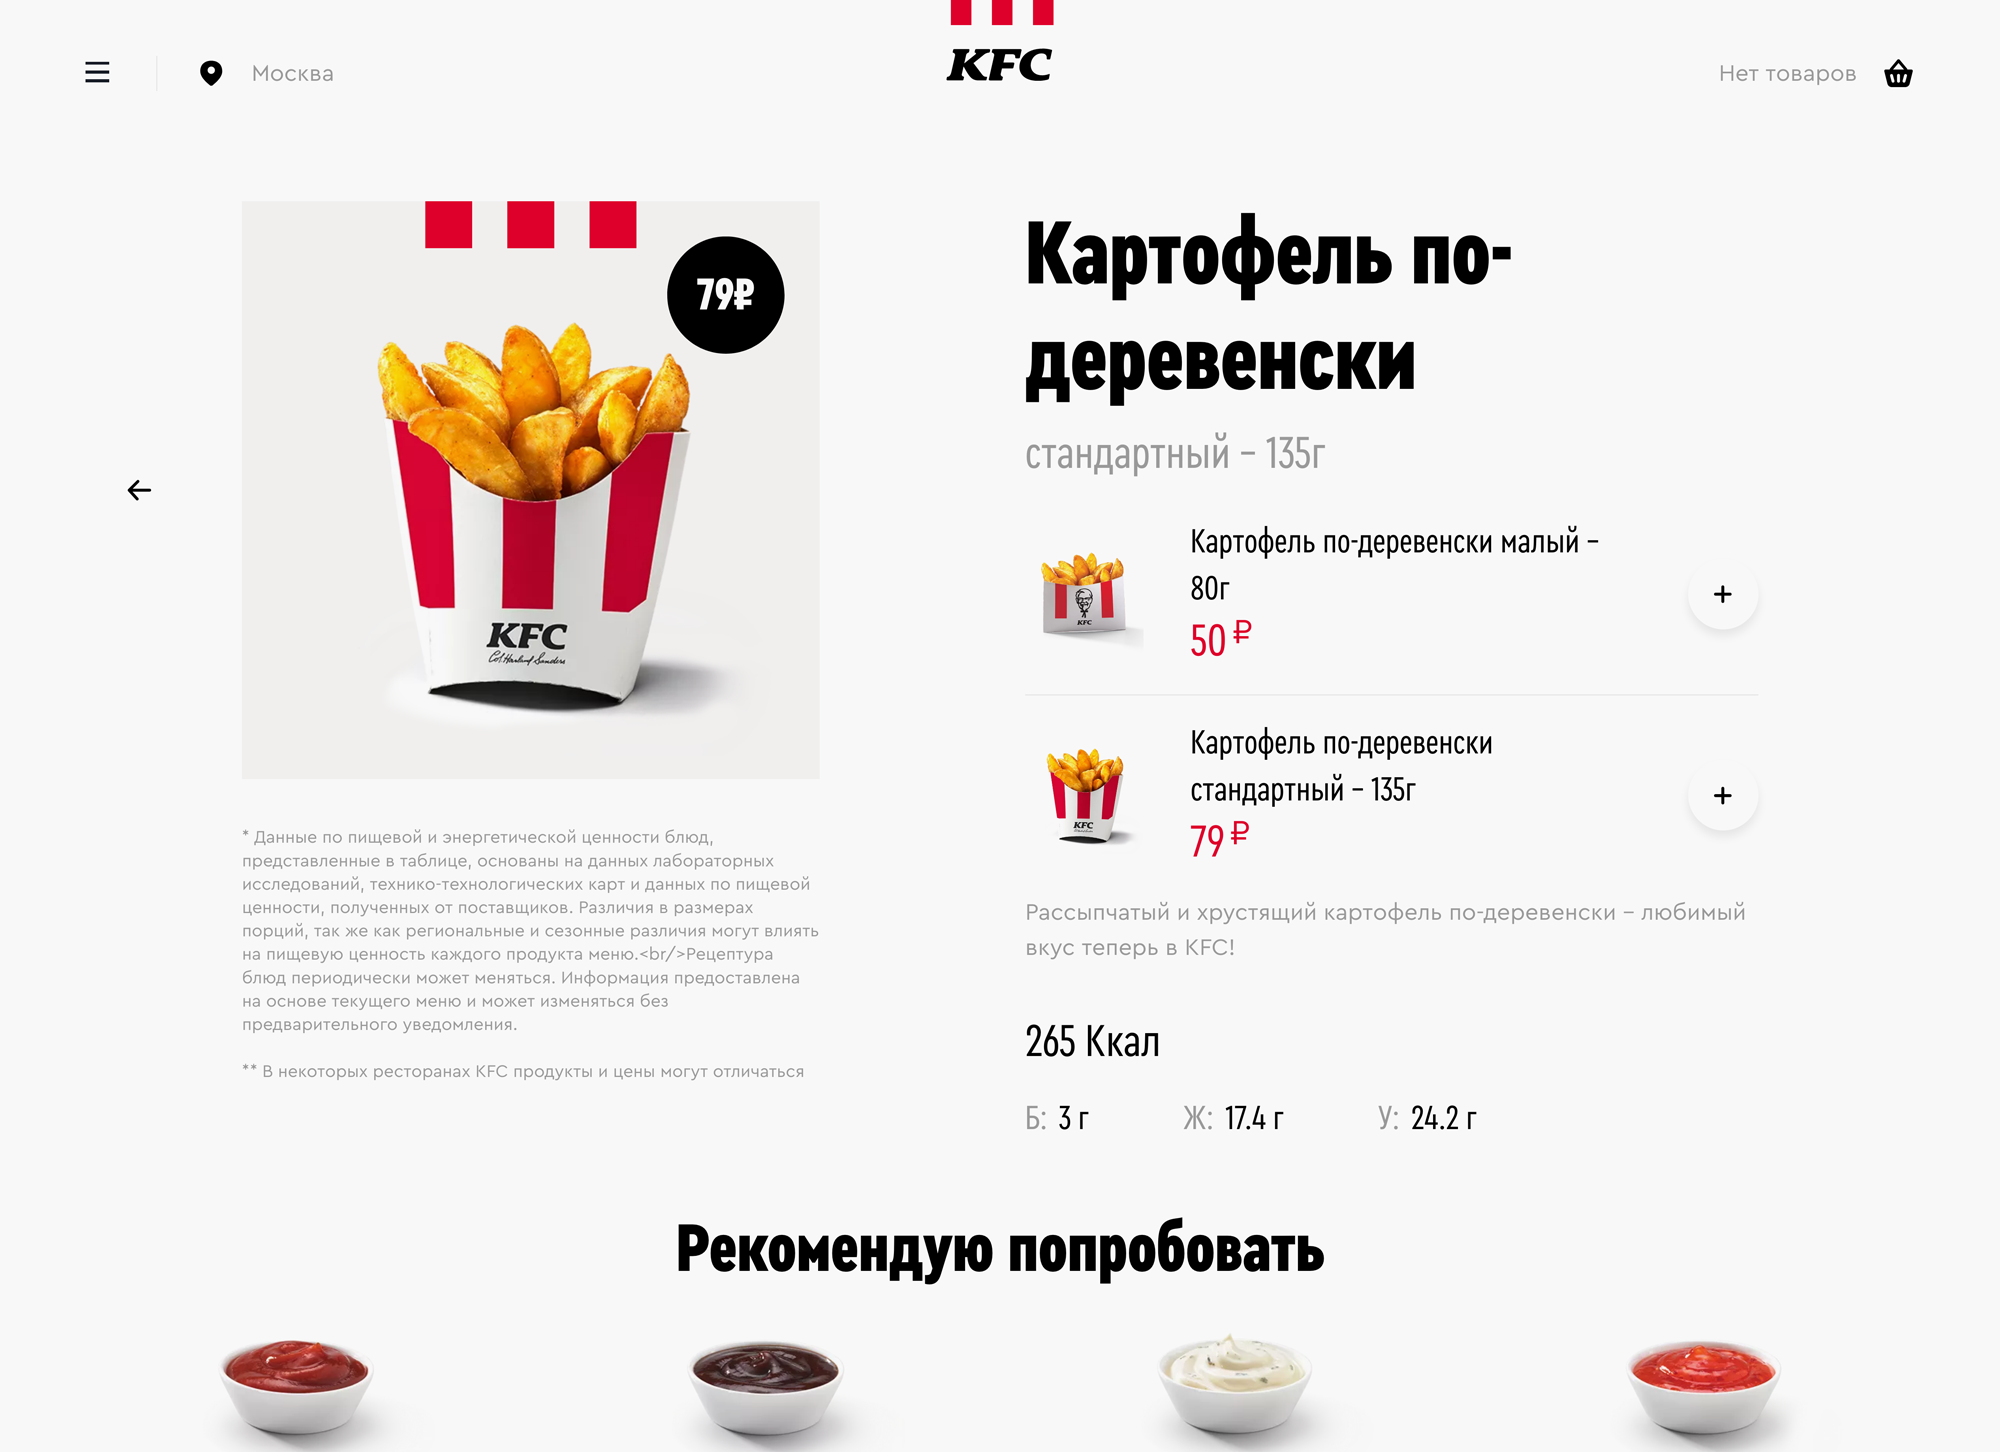 Type Mates Fonts In Use Kentucky Fried Chicken Russia 02 Cera Condensed Pro